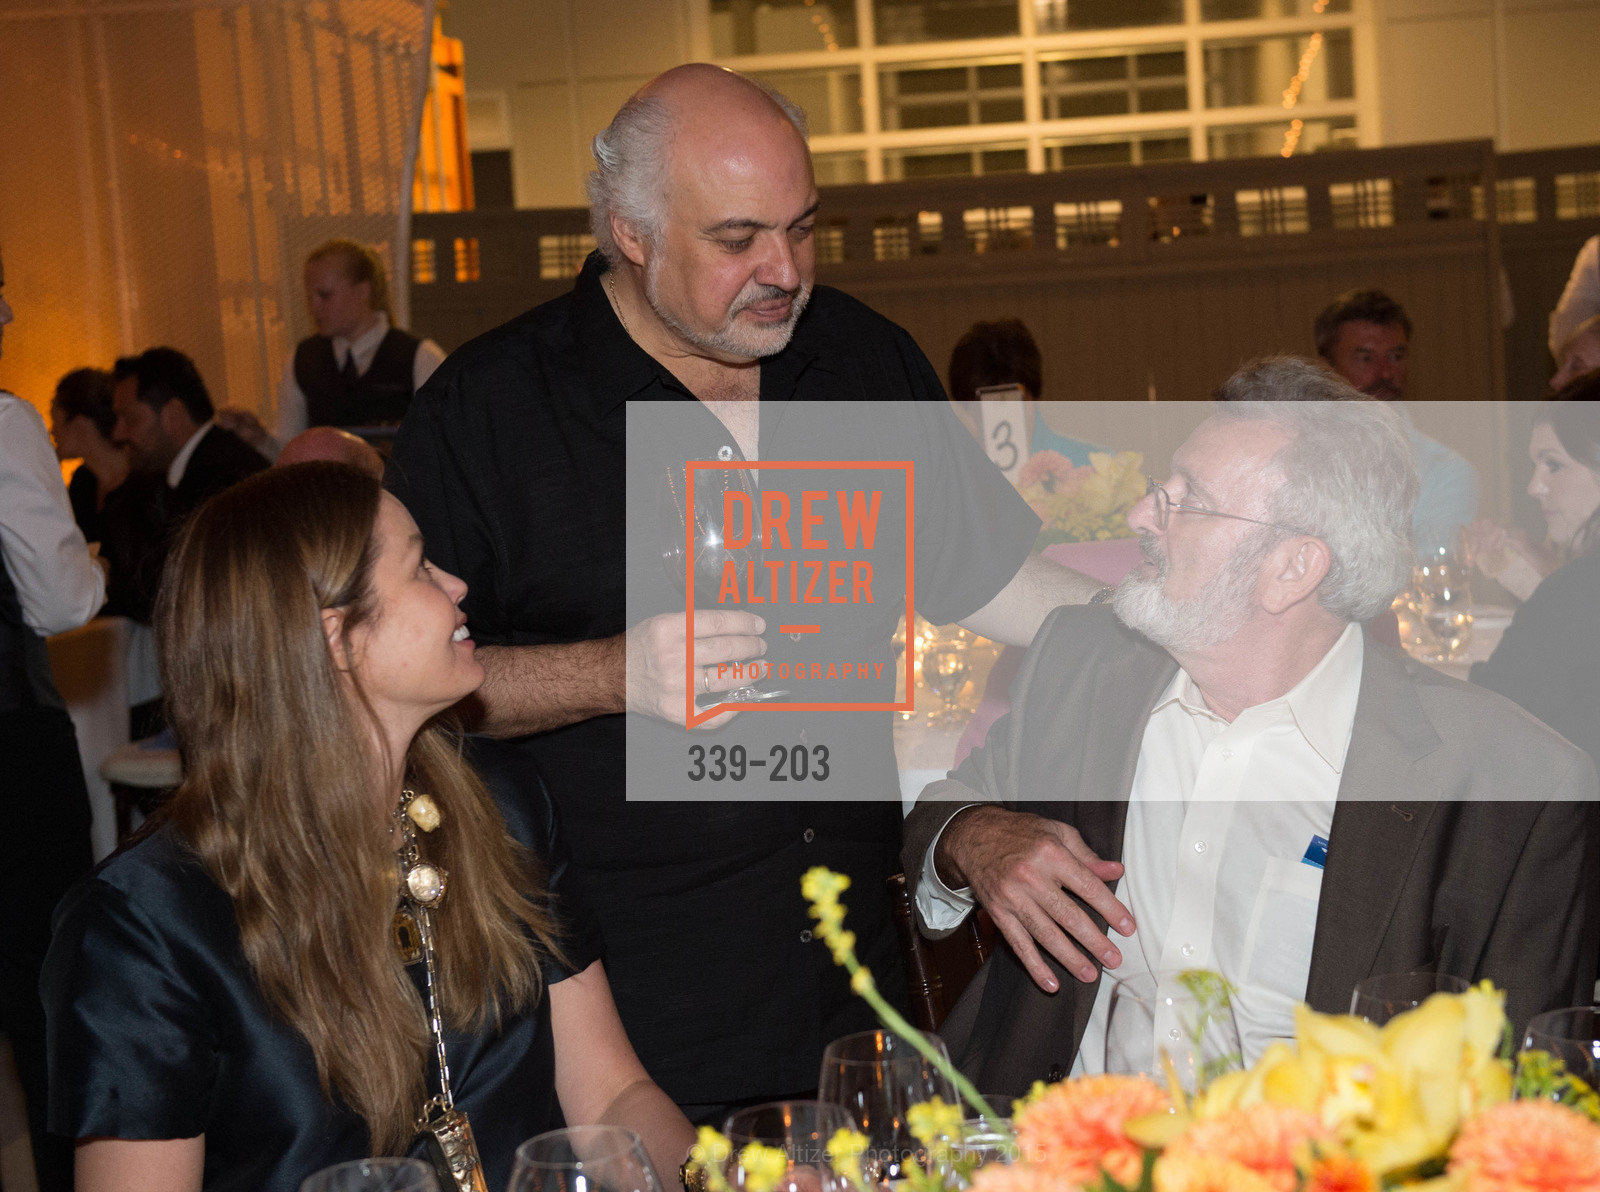 Tatiana Sorokko, Constantine Orbelian, Spyros Tseregounis, Festival del Sole Patron Dinner at Odette Estate, Odette Estate. 5998 Silverado Trail, July 26th, 2015,Drew Altizer, Drew Altizer Photography, full-service agency, private events, San Francisco photographer, photographer california